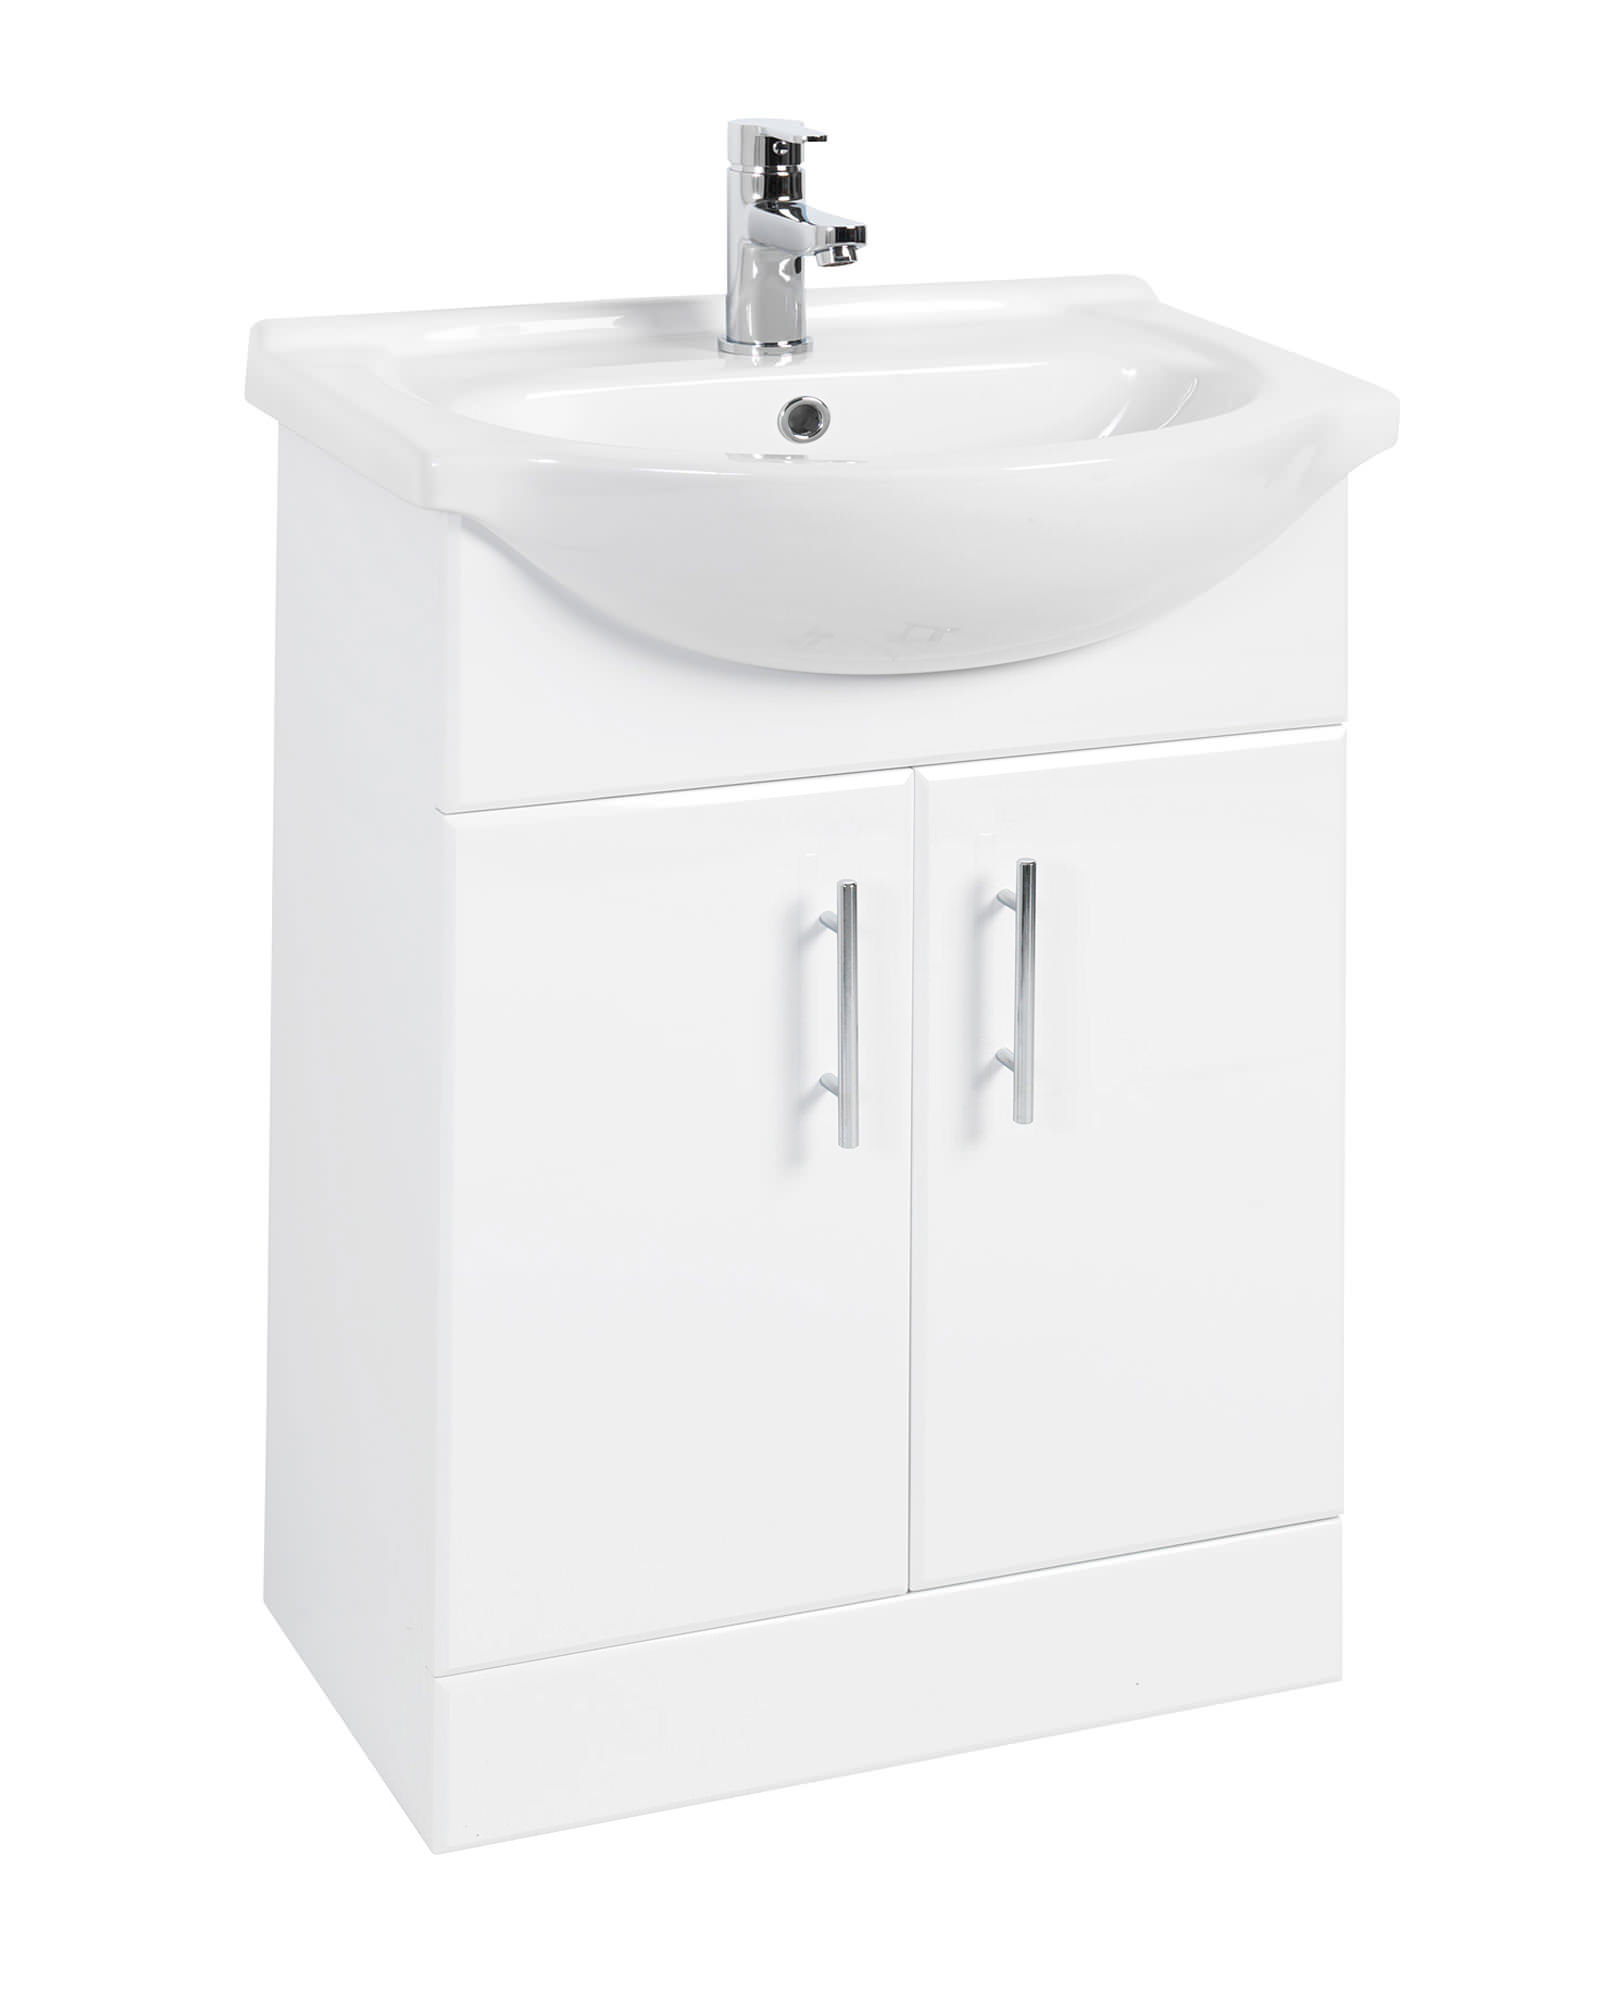 Bathroom Cabinets 400mm Wide floor standing bathroom vanity units: with & without basins